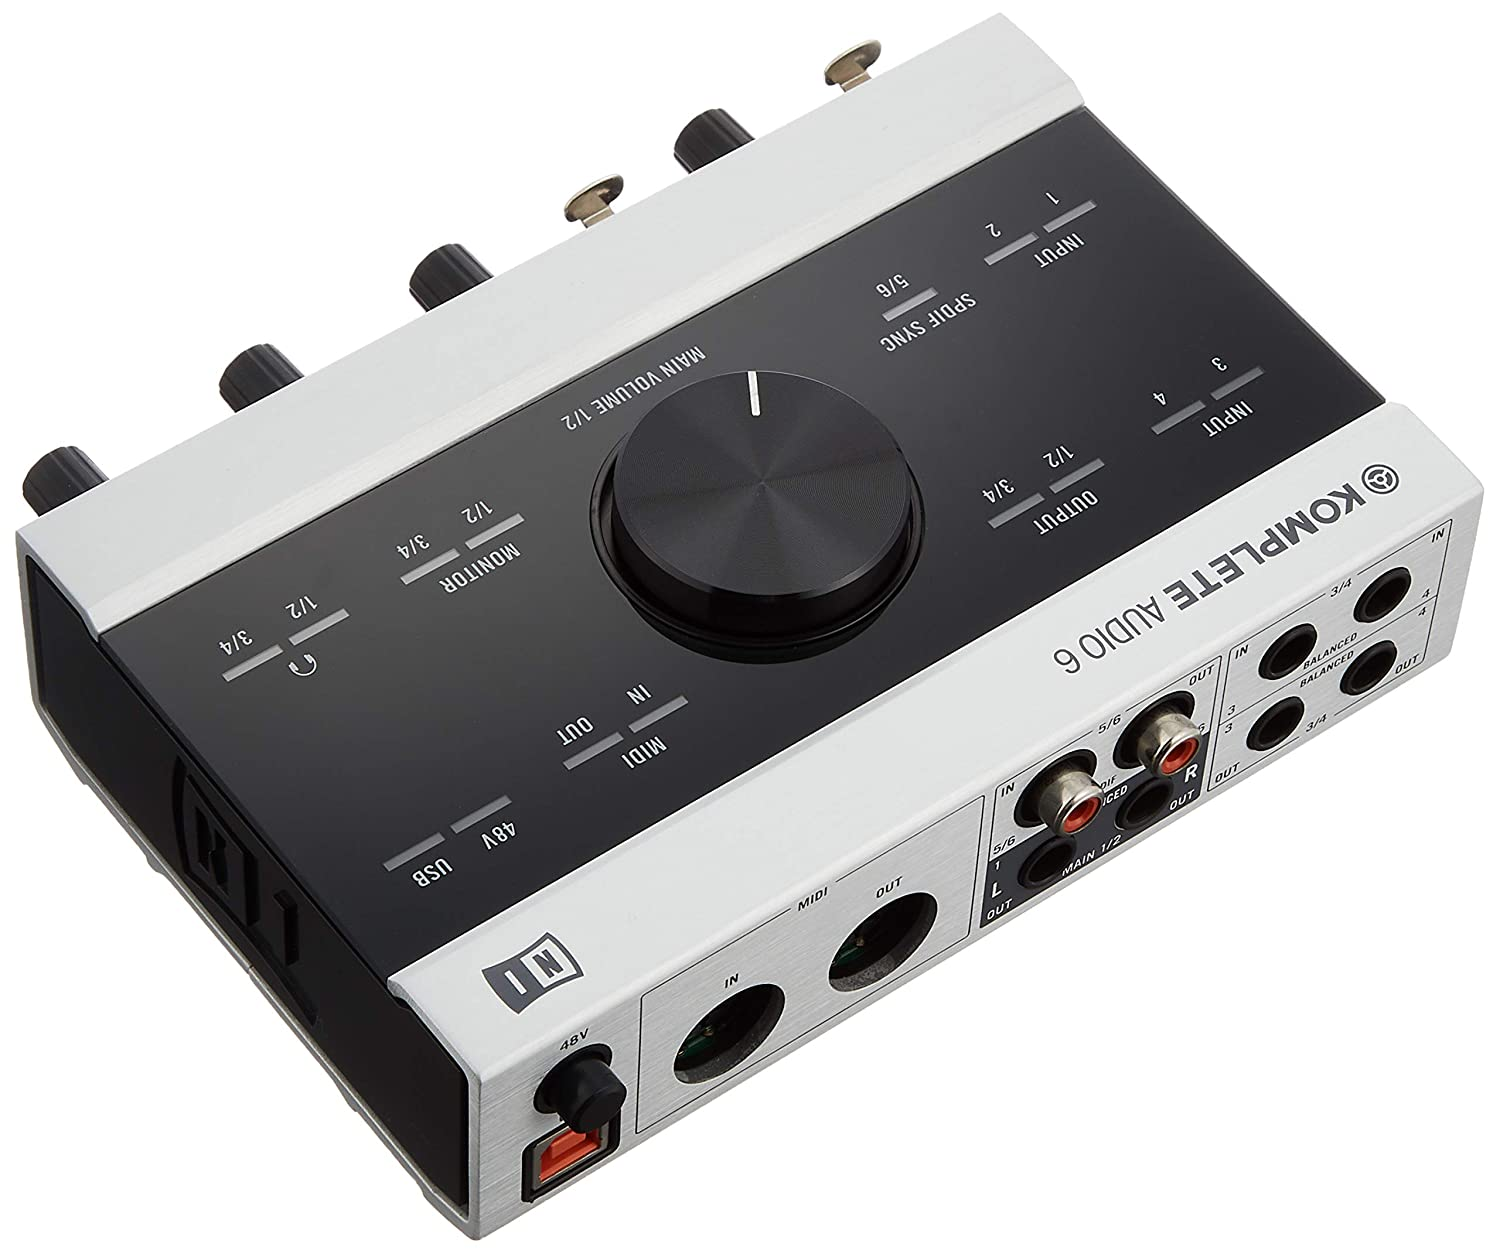 komplete audio 6 driver not recognized